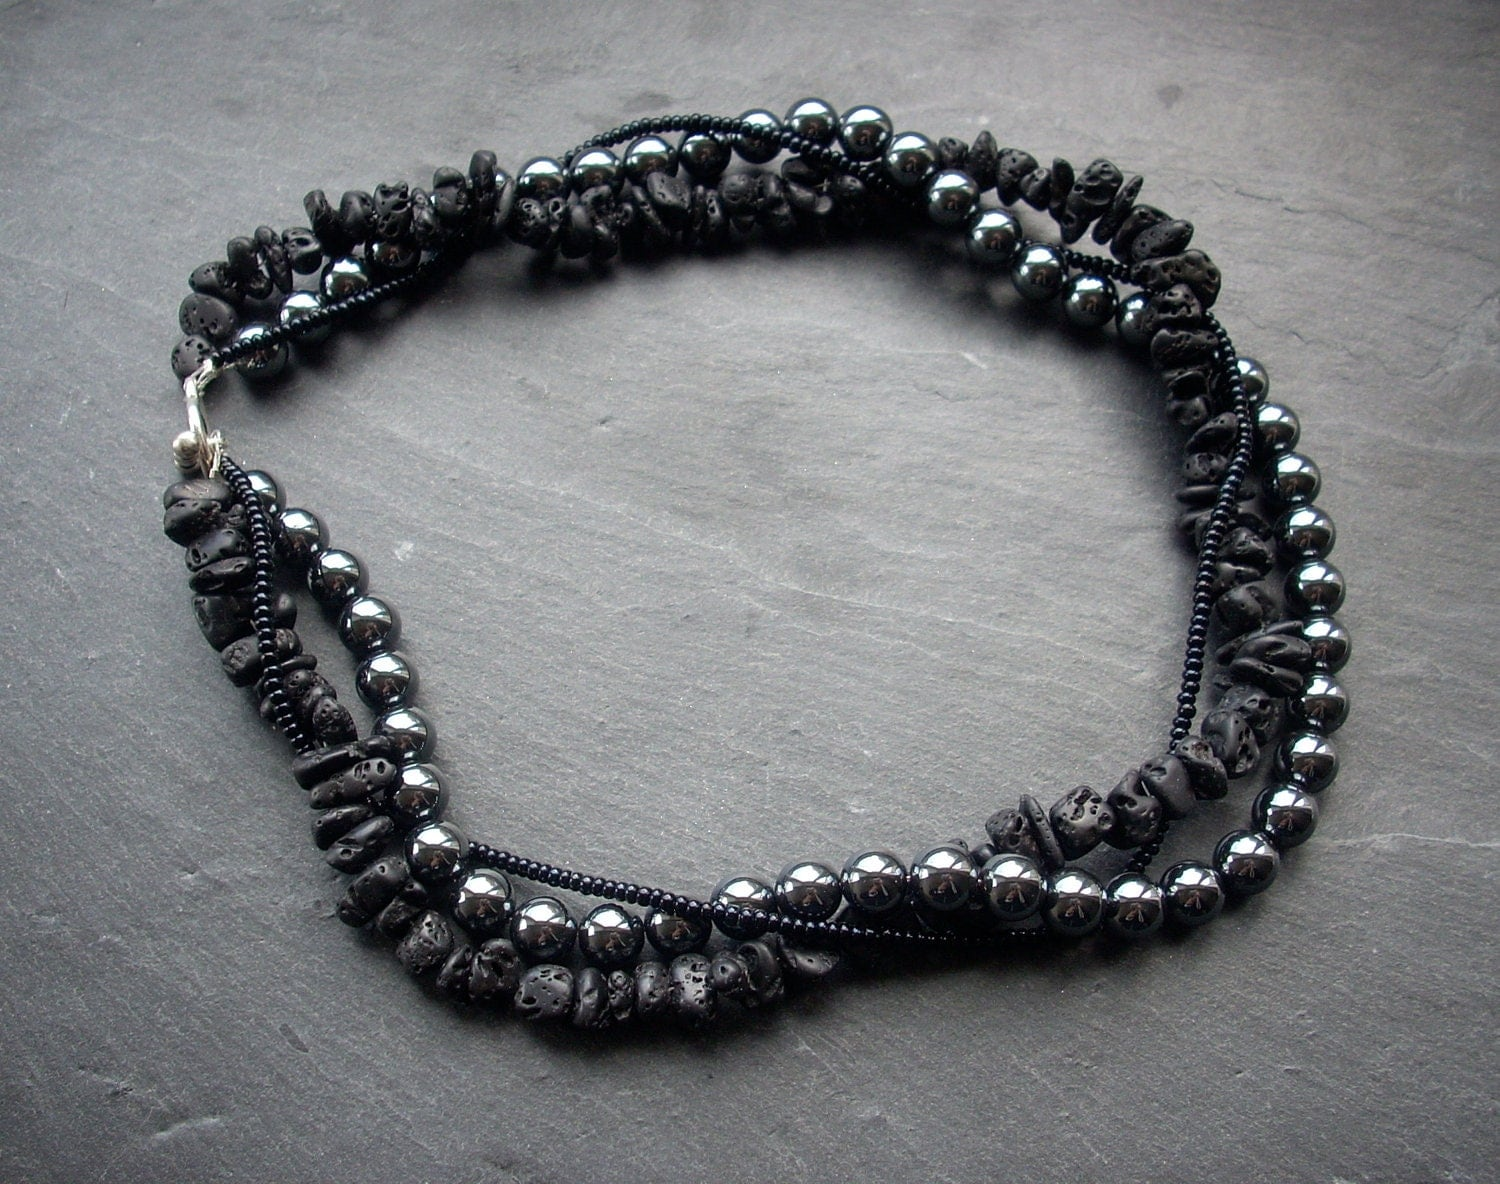 Black beaded necklace hematite lava stone choker